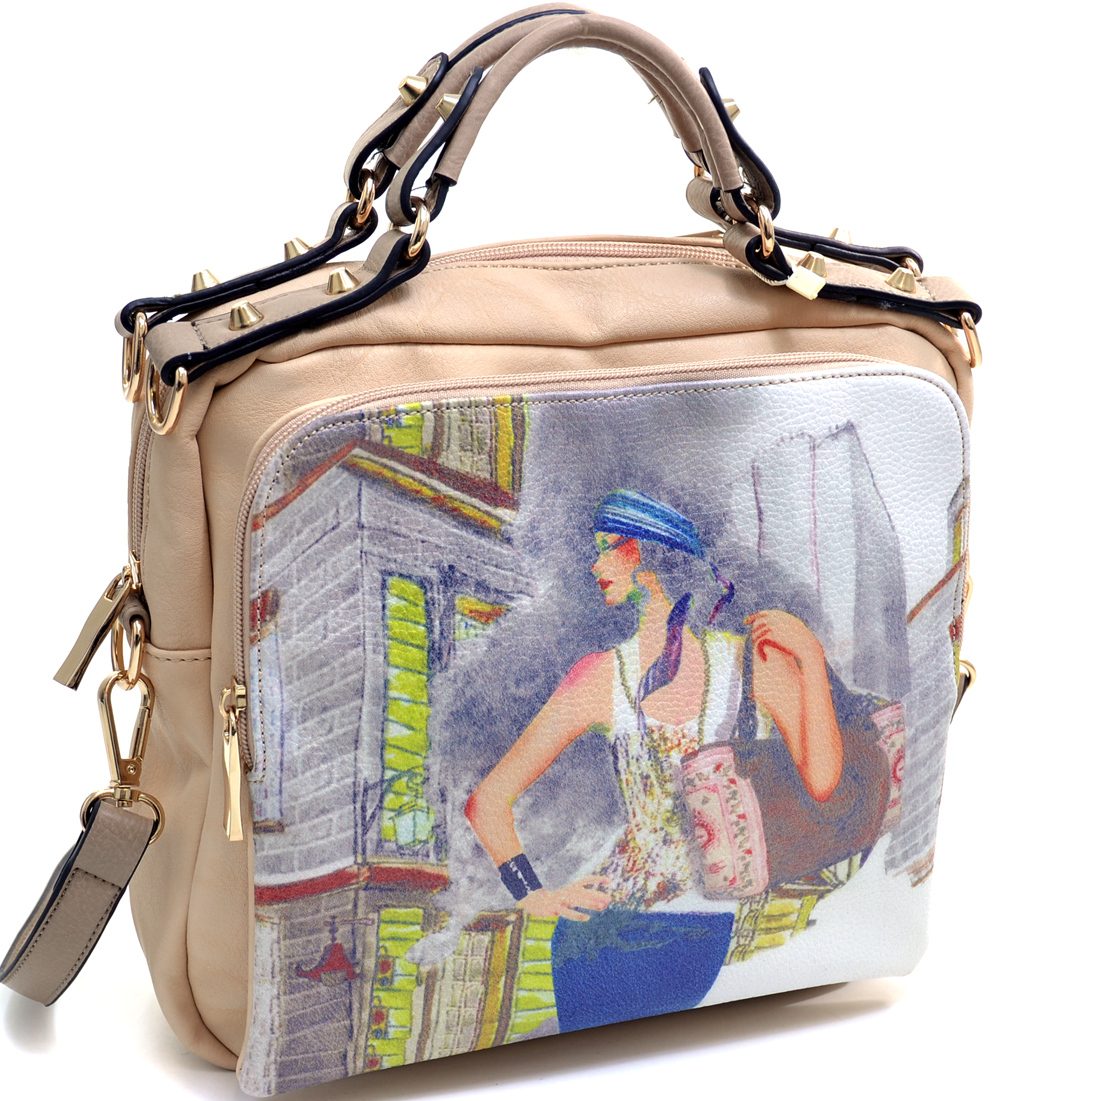 Chic Satchel Bag with Vintage Lady Print